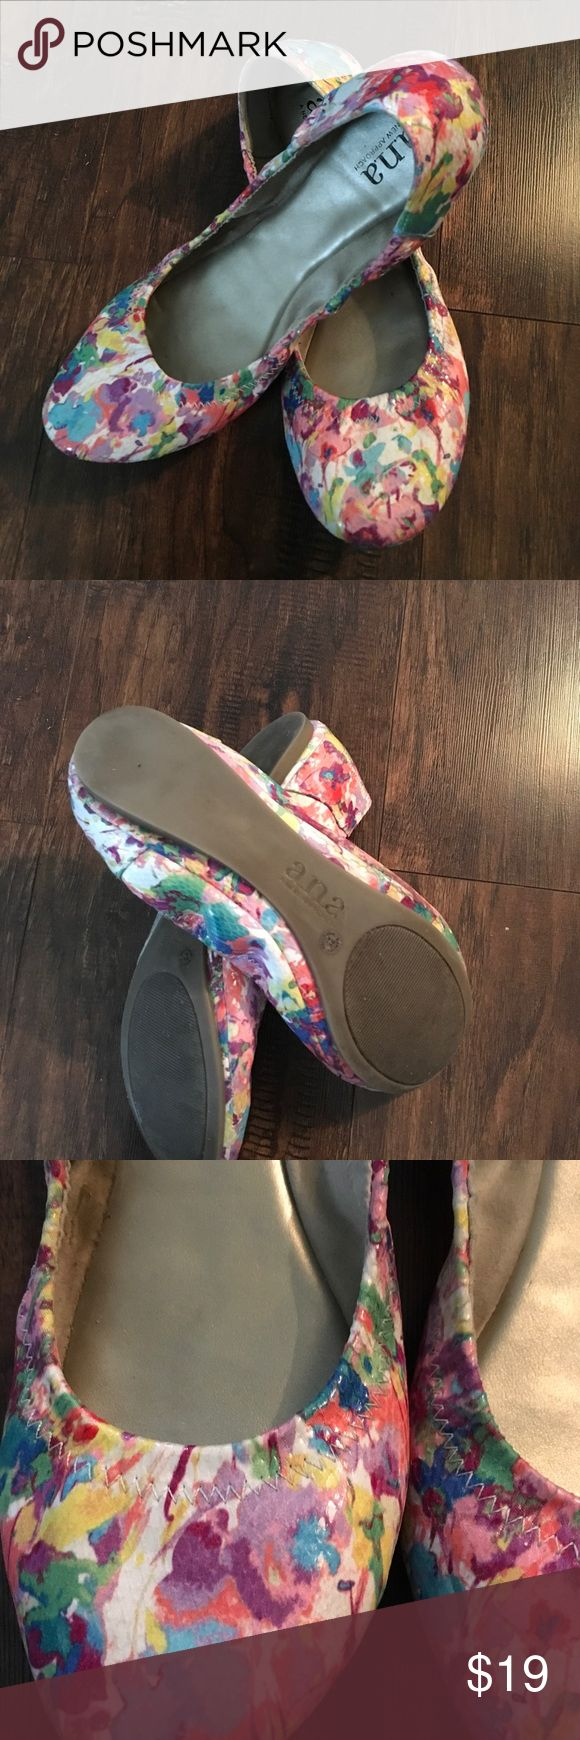 ANA size 9 floral ballet flats Patent floral ballet flats in beautiful pastel colors. Worn once to an indoor church function. Excellent like new condition. a.n.a Shoes Flats & Loafers